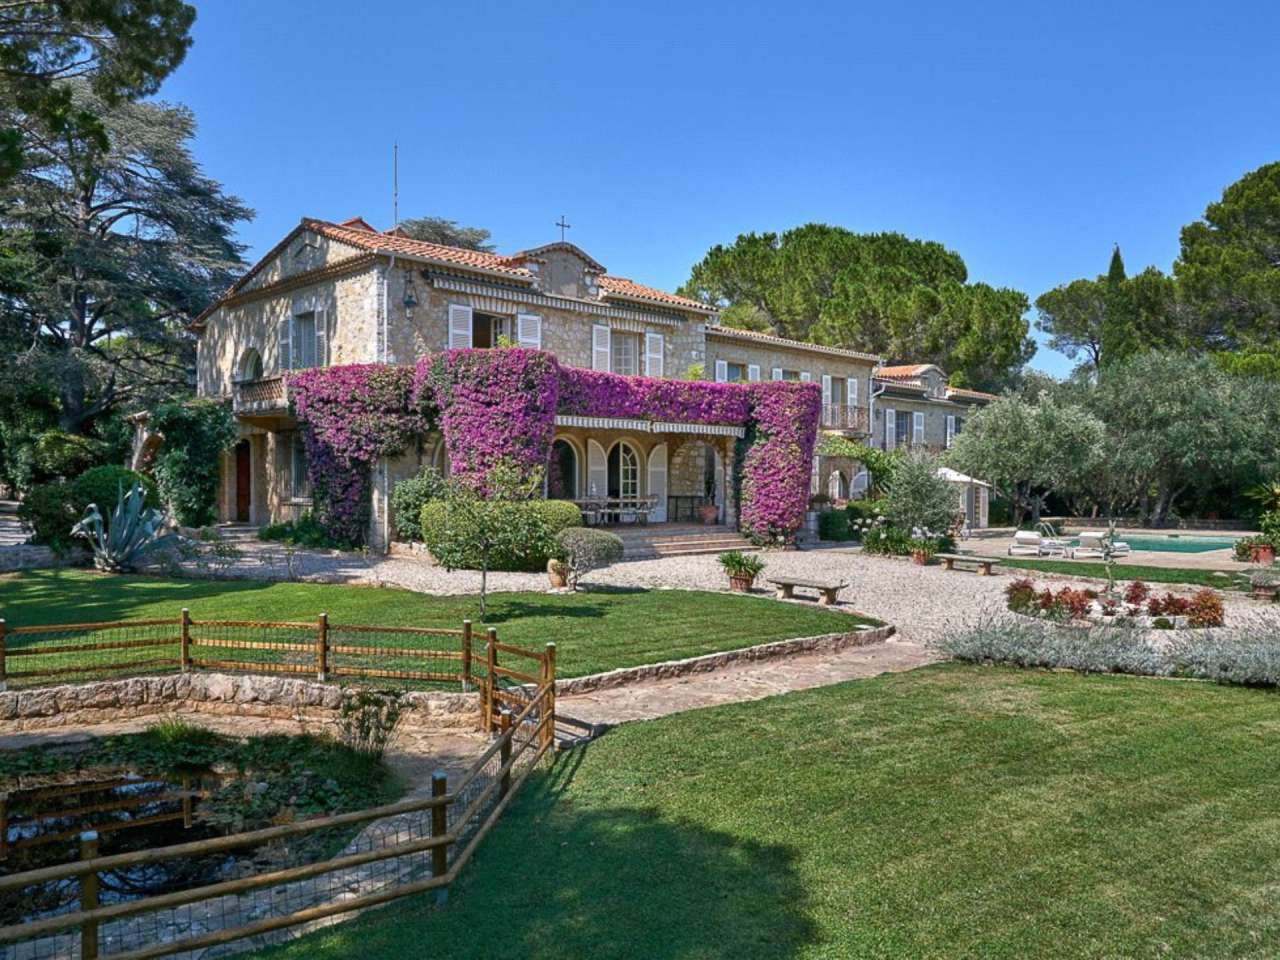 Villa | France | Antibes | 208185 | Prestige Property Group